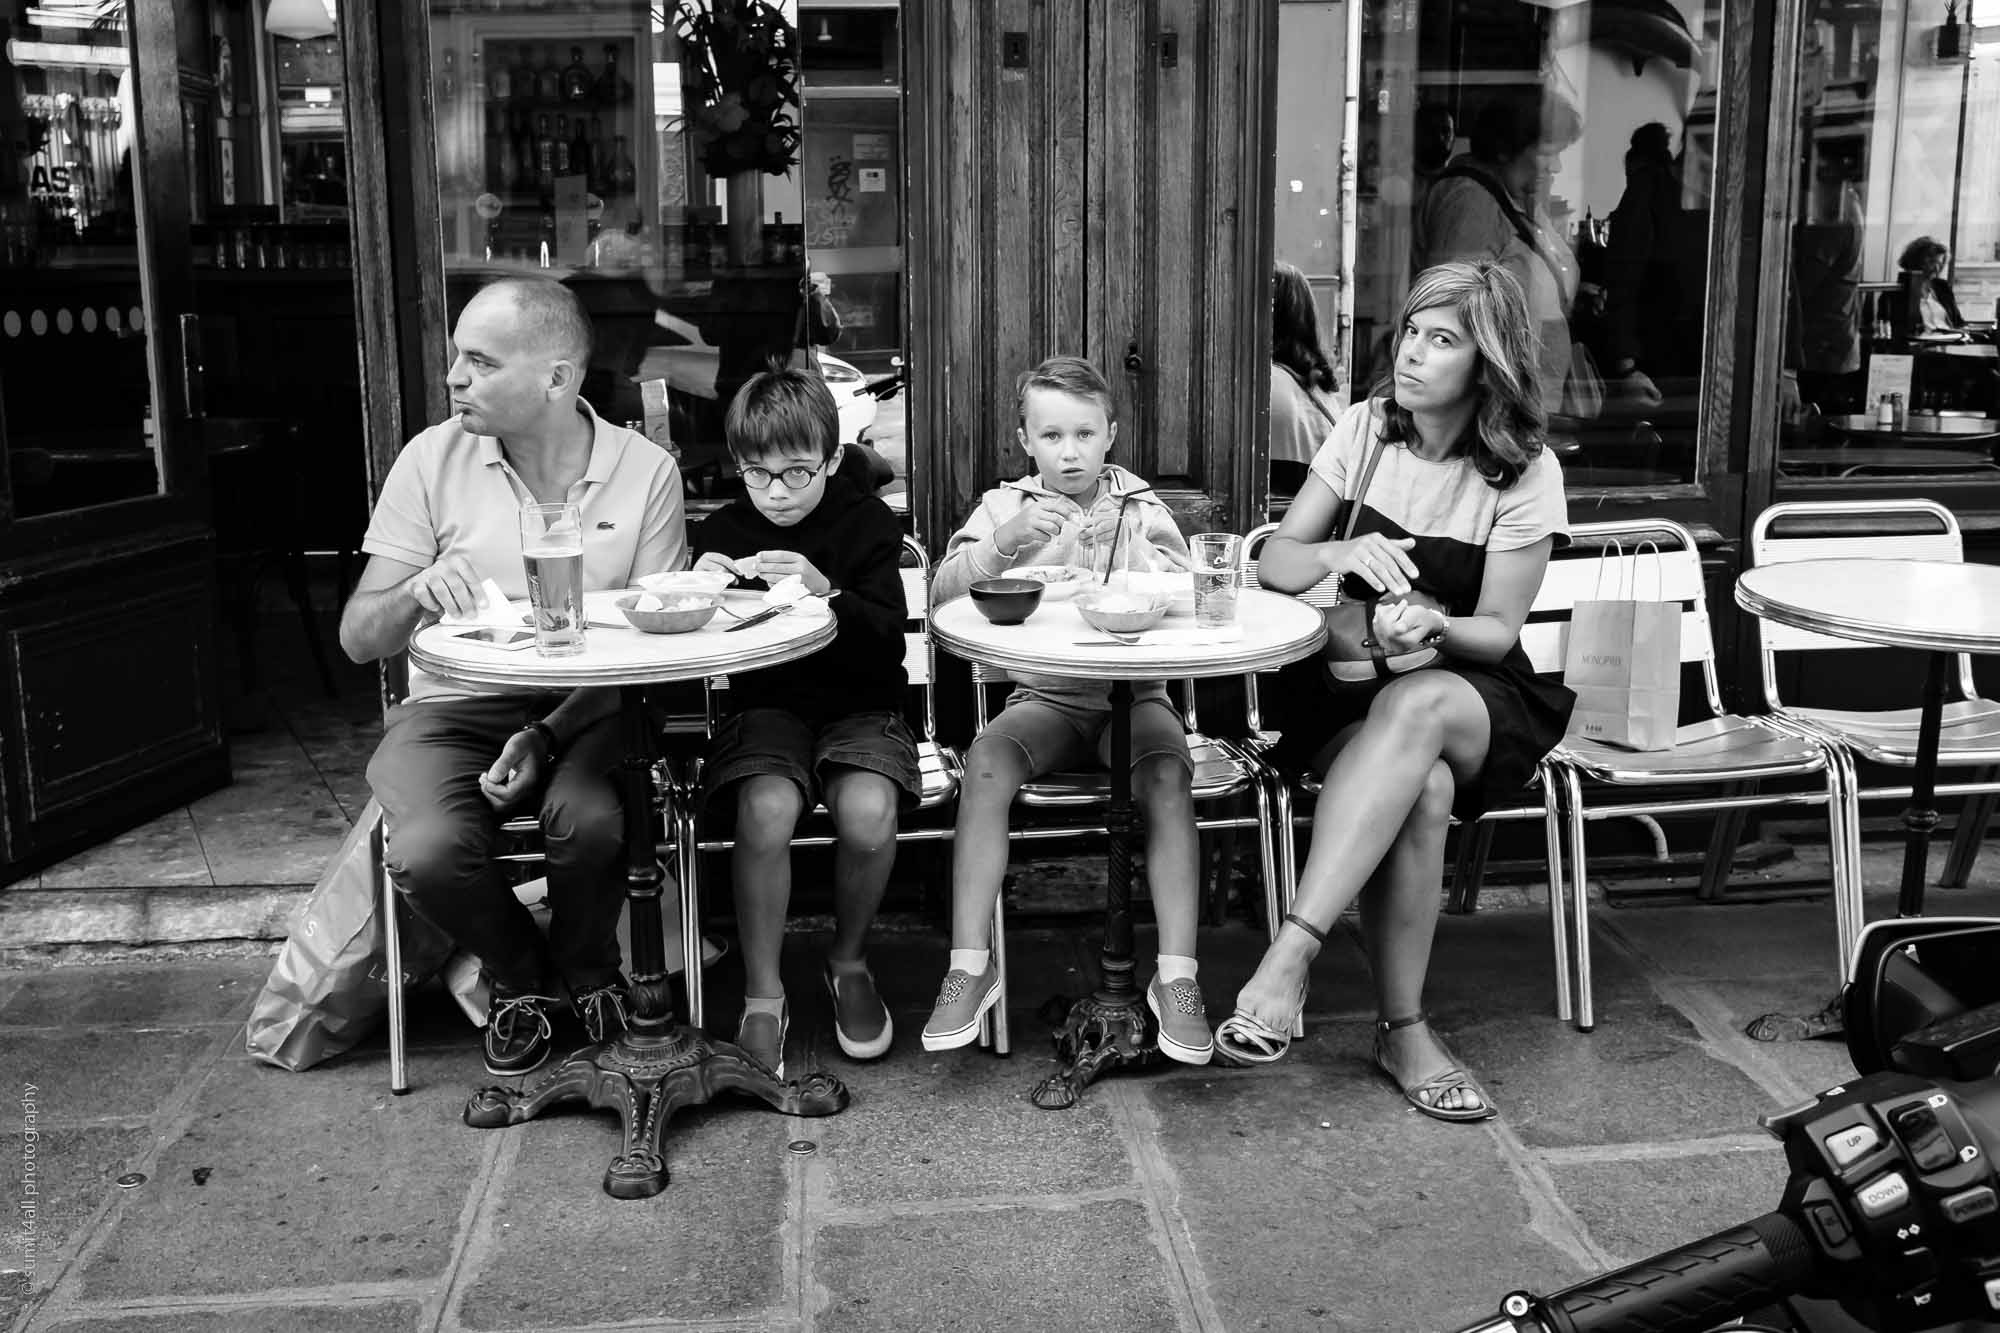 Cafe Lunch on a Lazy Summer Afternoon in Paris